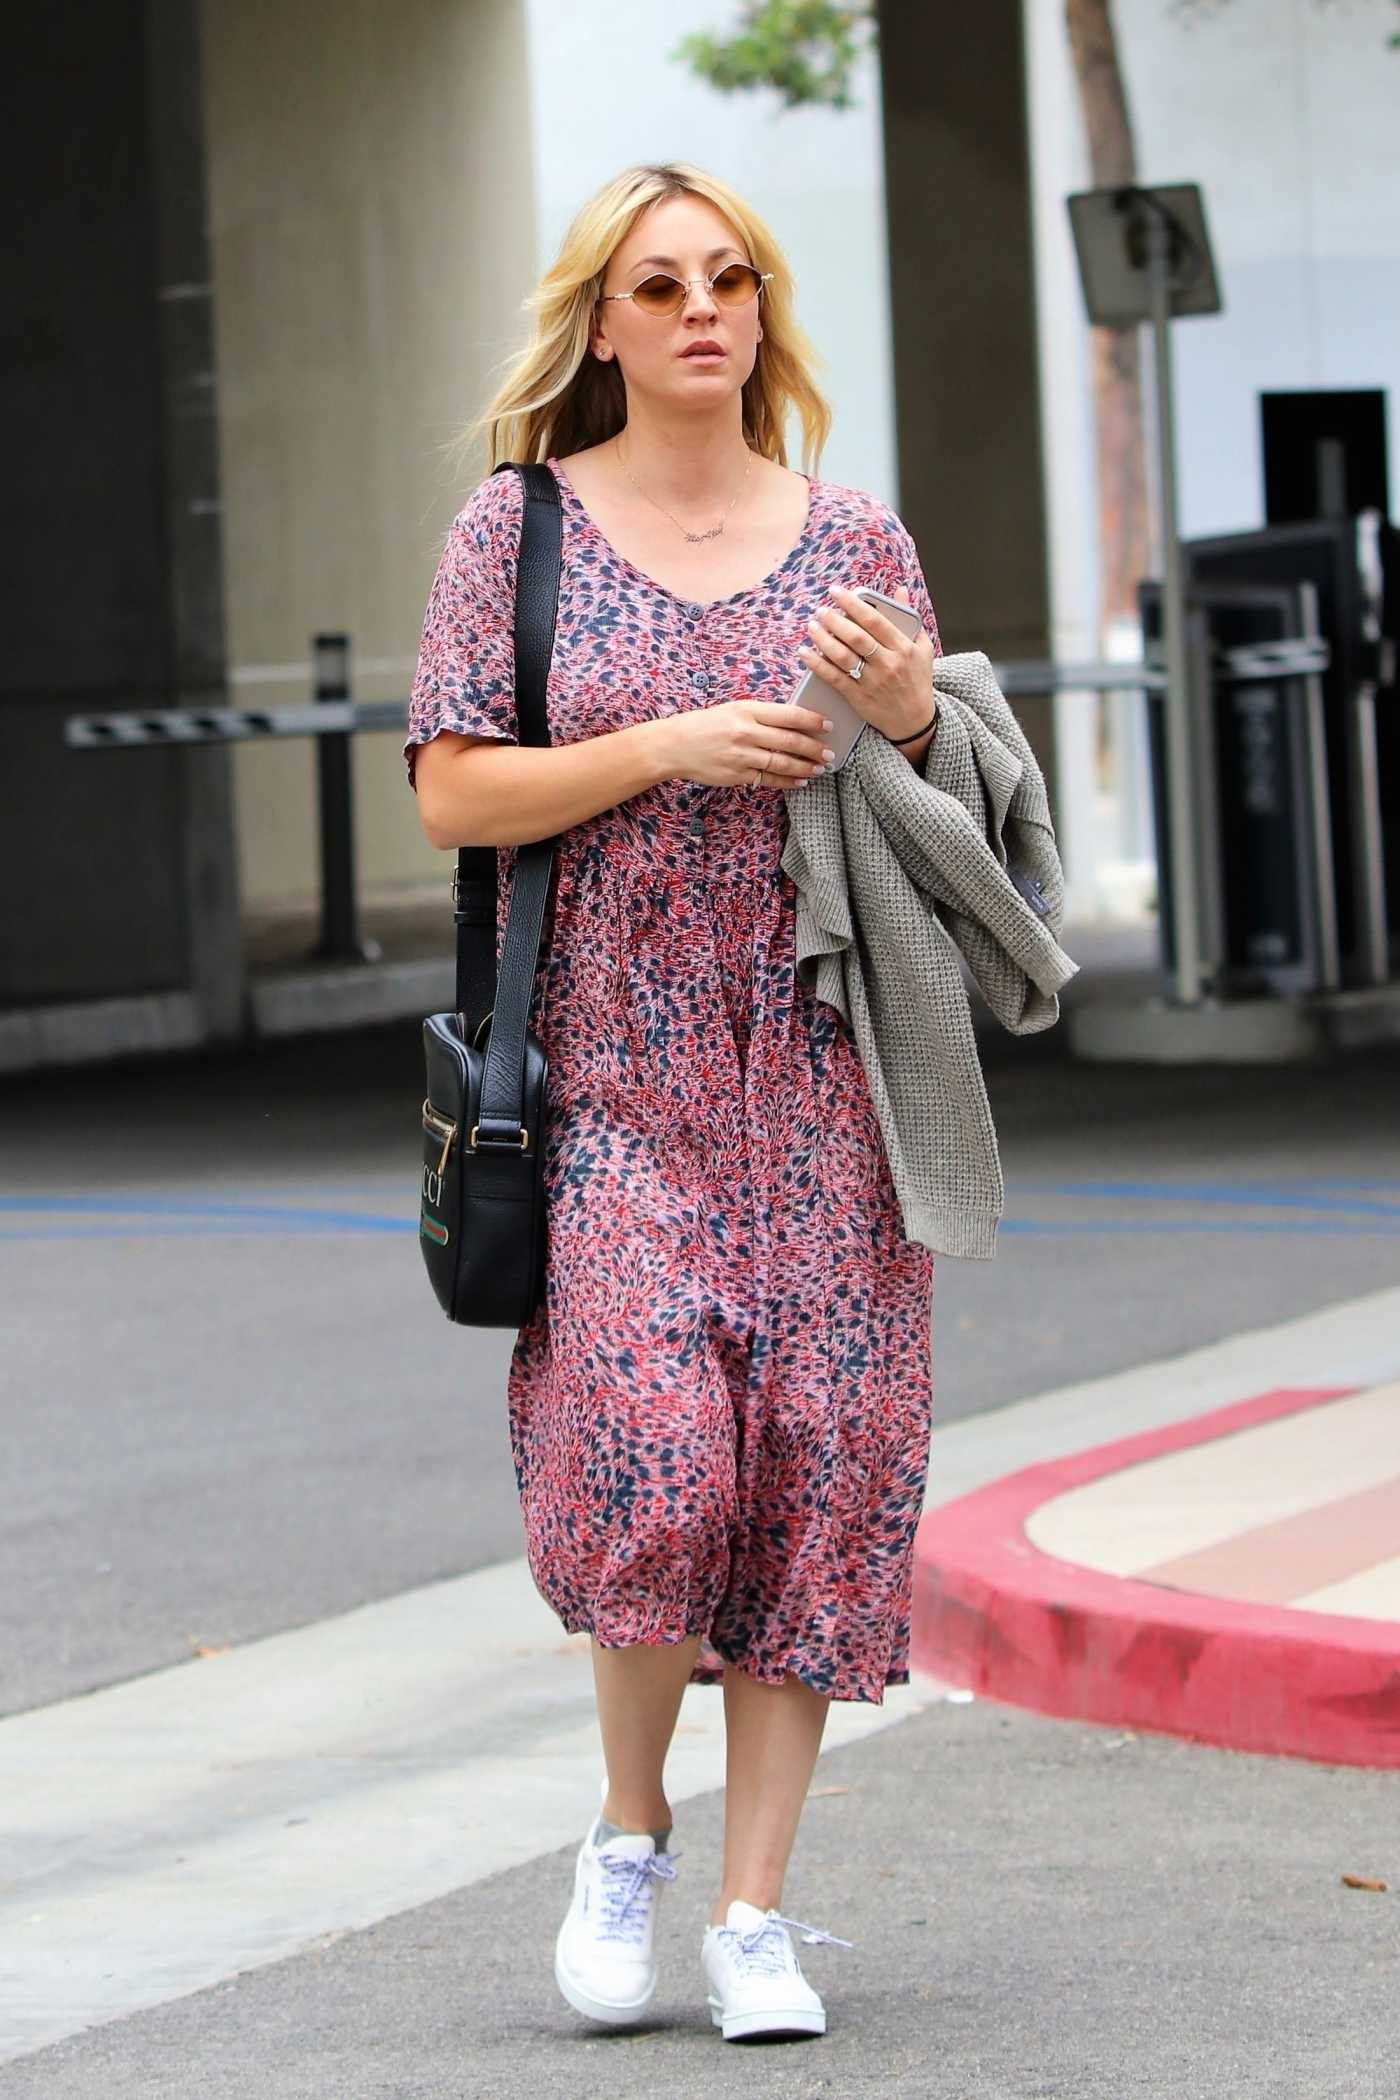 Kaley Cuoco in a White Sneakers Was Seen Out in Los Angeles 06/24/2019